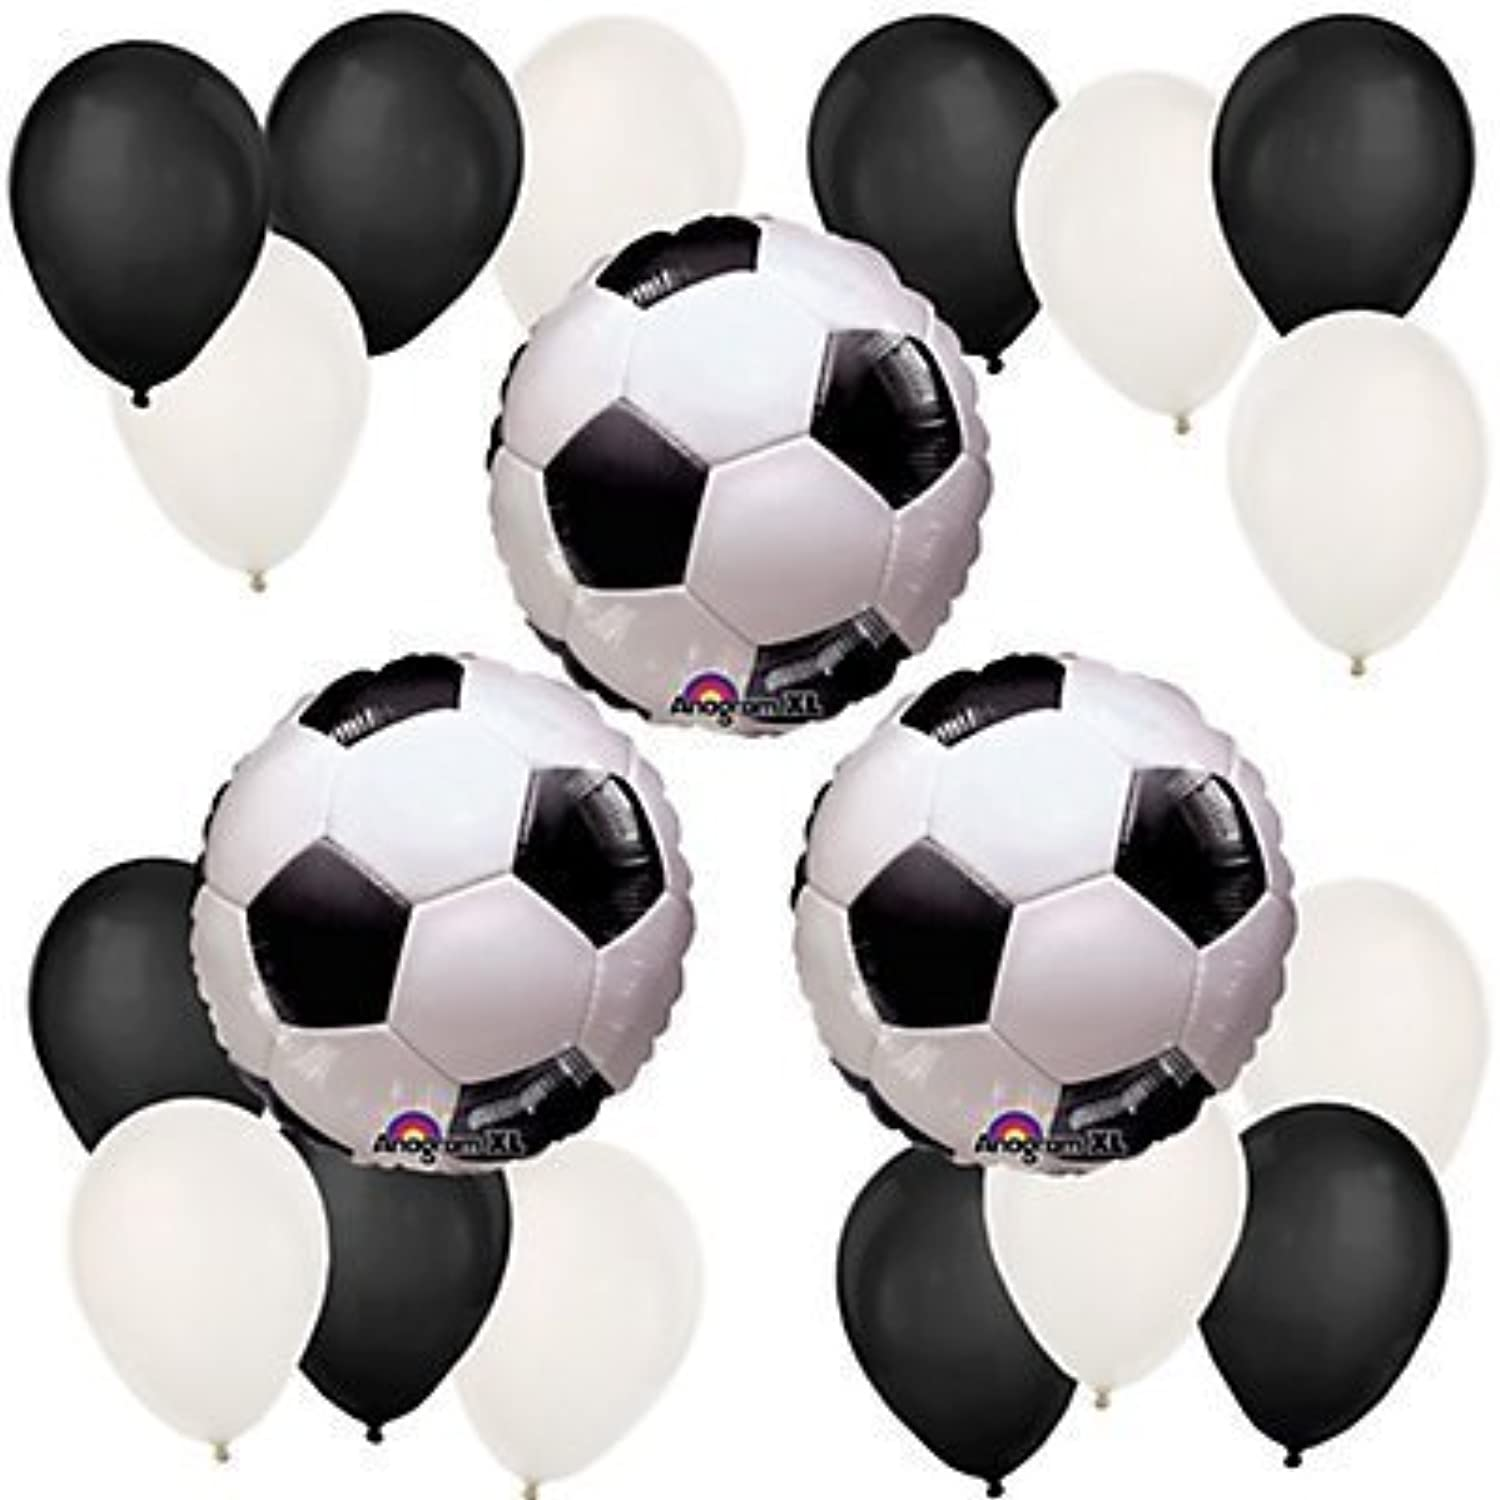 Goaaal! Soccer Birthday Party Balloon Kit by Party Supplies [並行輸入品]